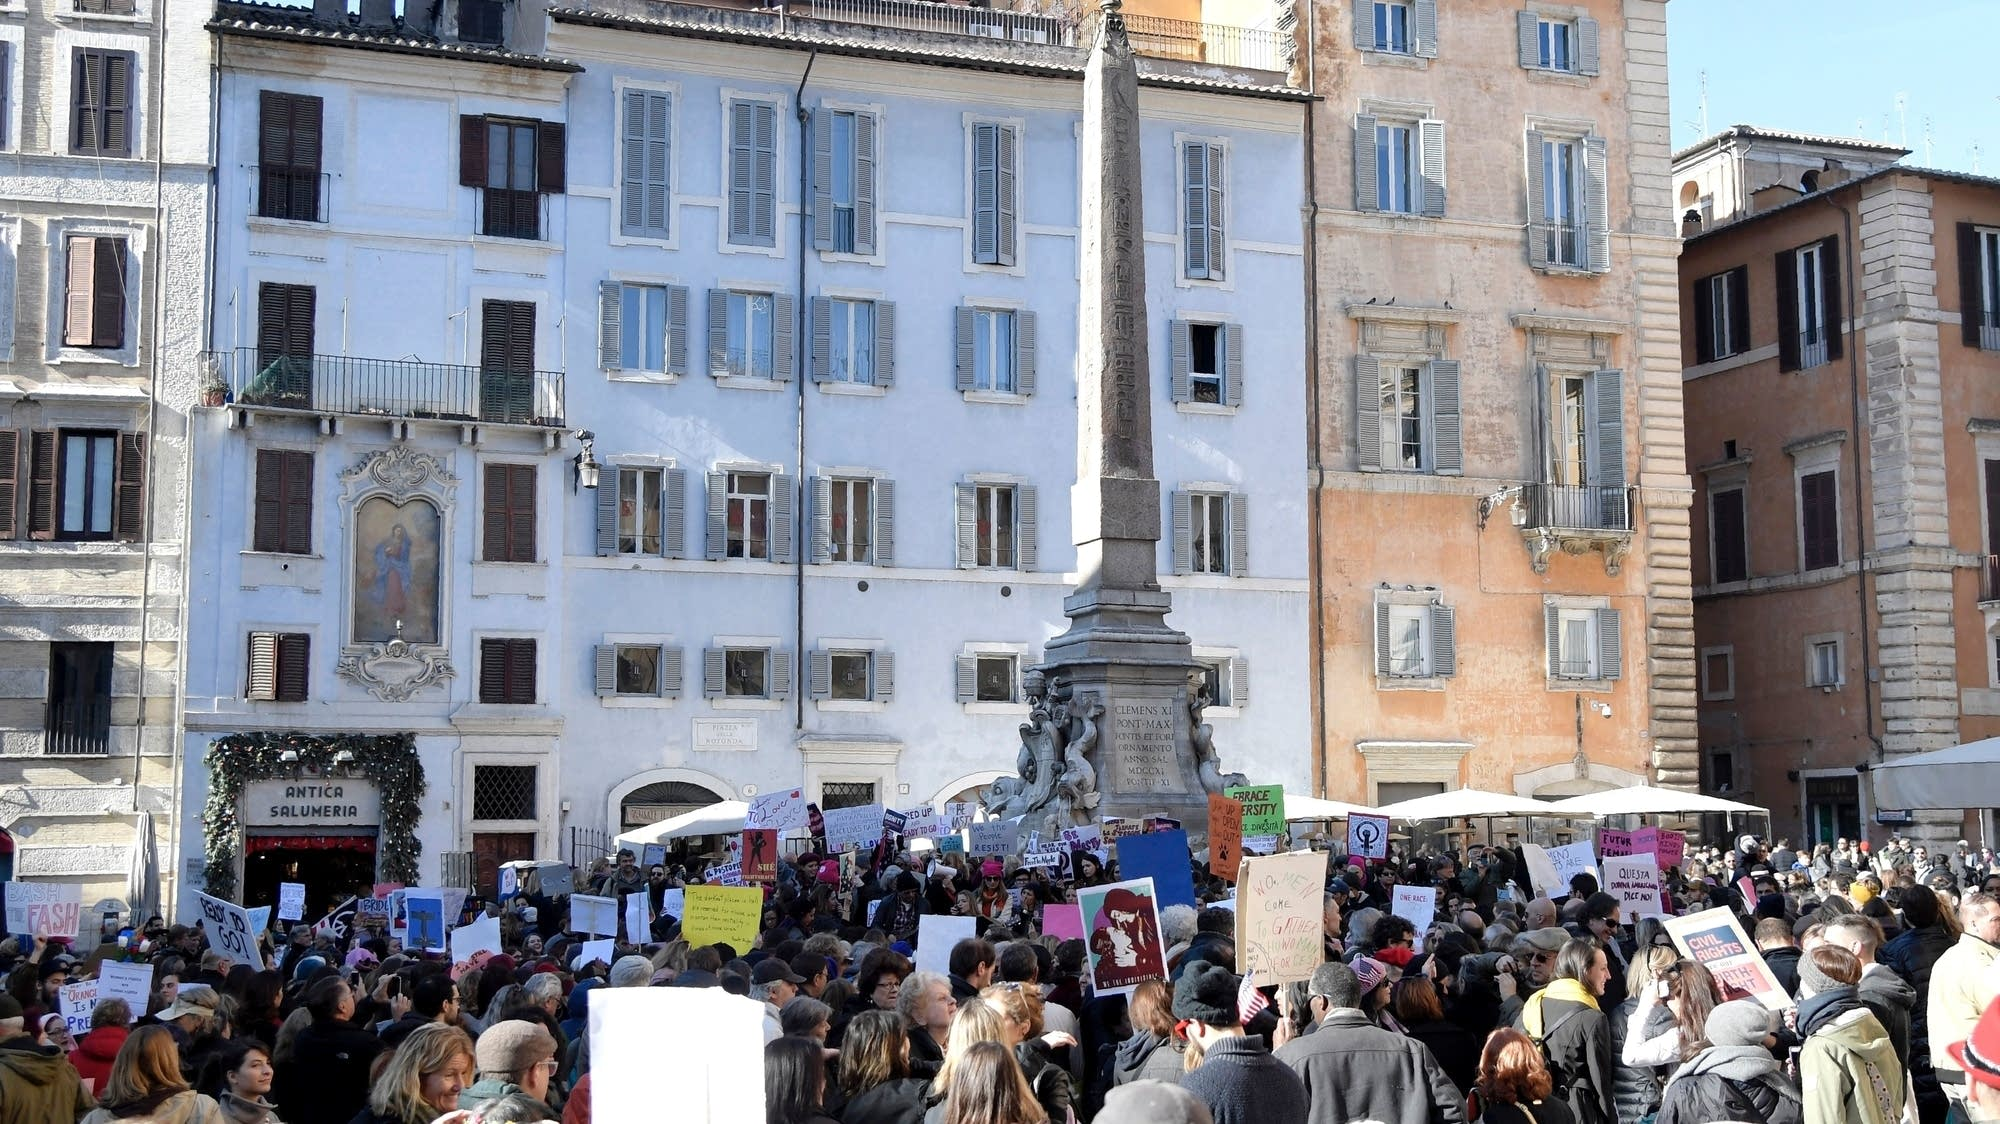 Rome, Italy: People shout and hold signs during a rally.